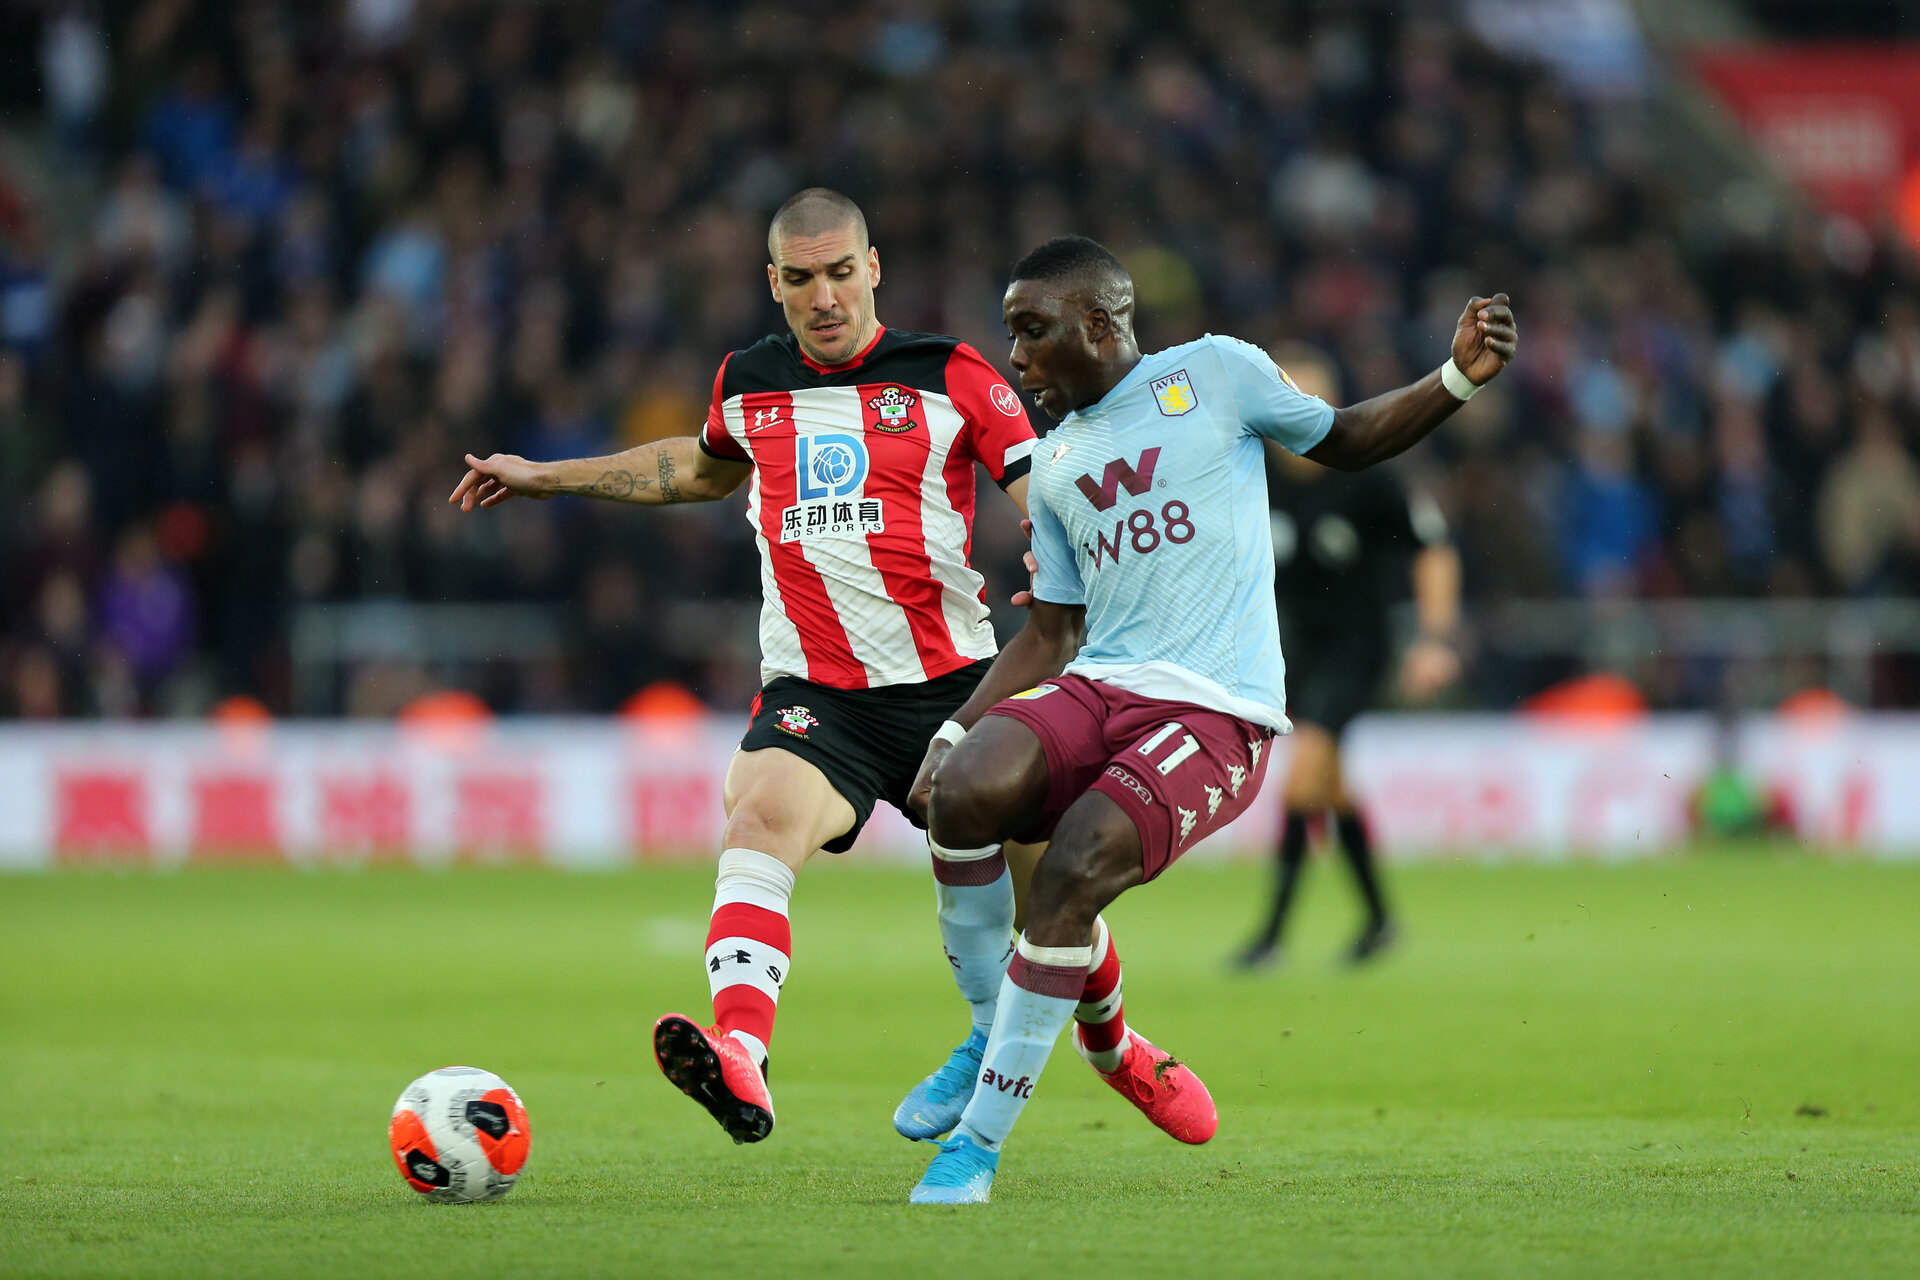 SOUTHAMPTON, ENGLAND - FEBRUARY 22: Oriol Romeu during the Premier League match between Southampton FC and Aston Villa at St Mary's Stadium on February 22, 2020 in Southampton, United Kingdom. (Photo by Chris Moorhouse/Southampton FC via Getty Images)